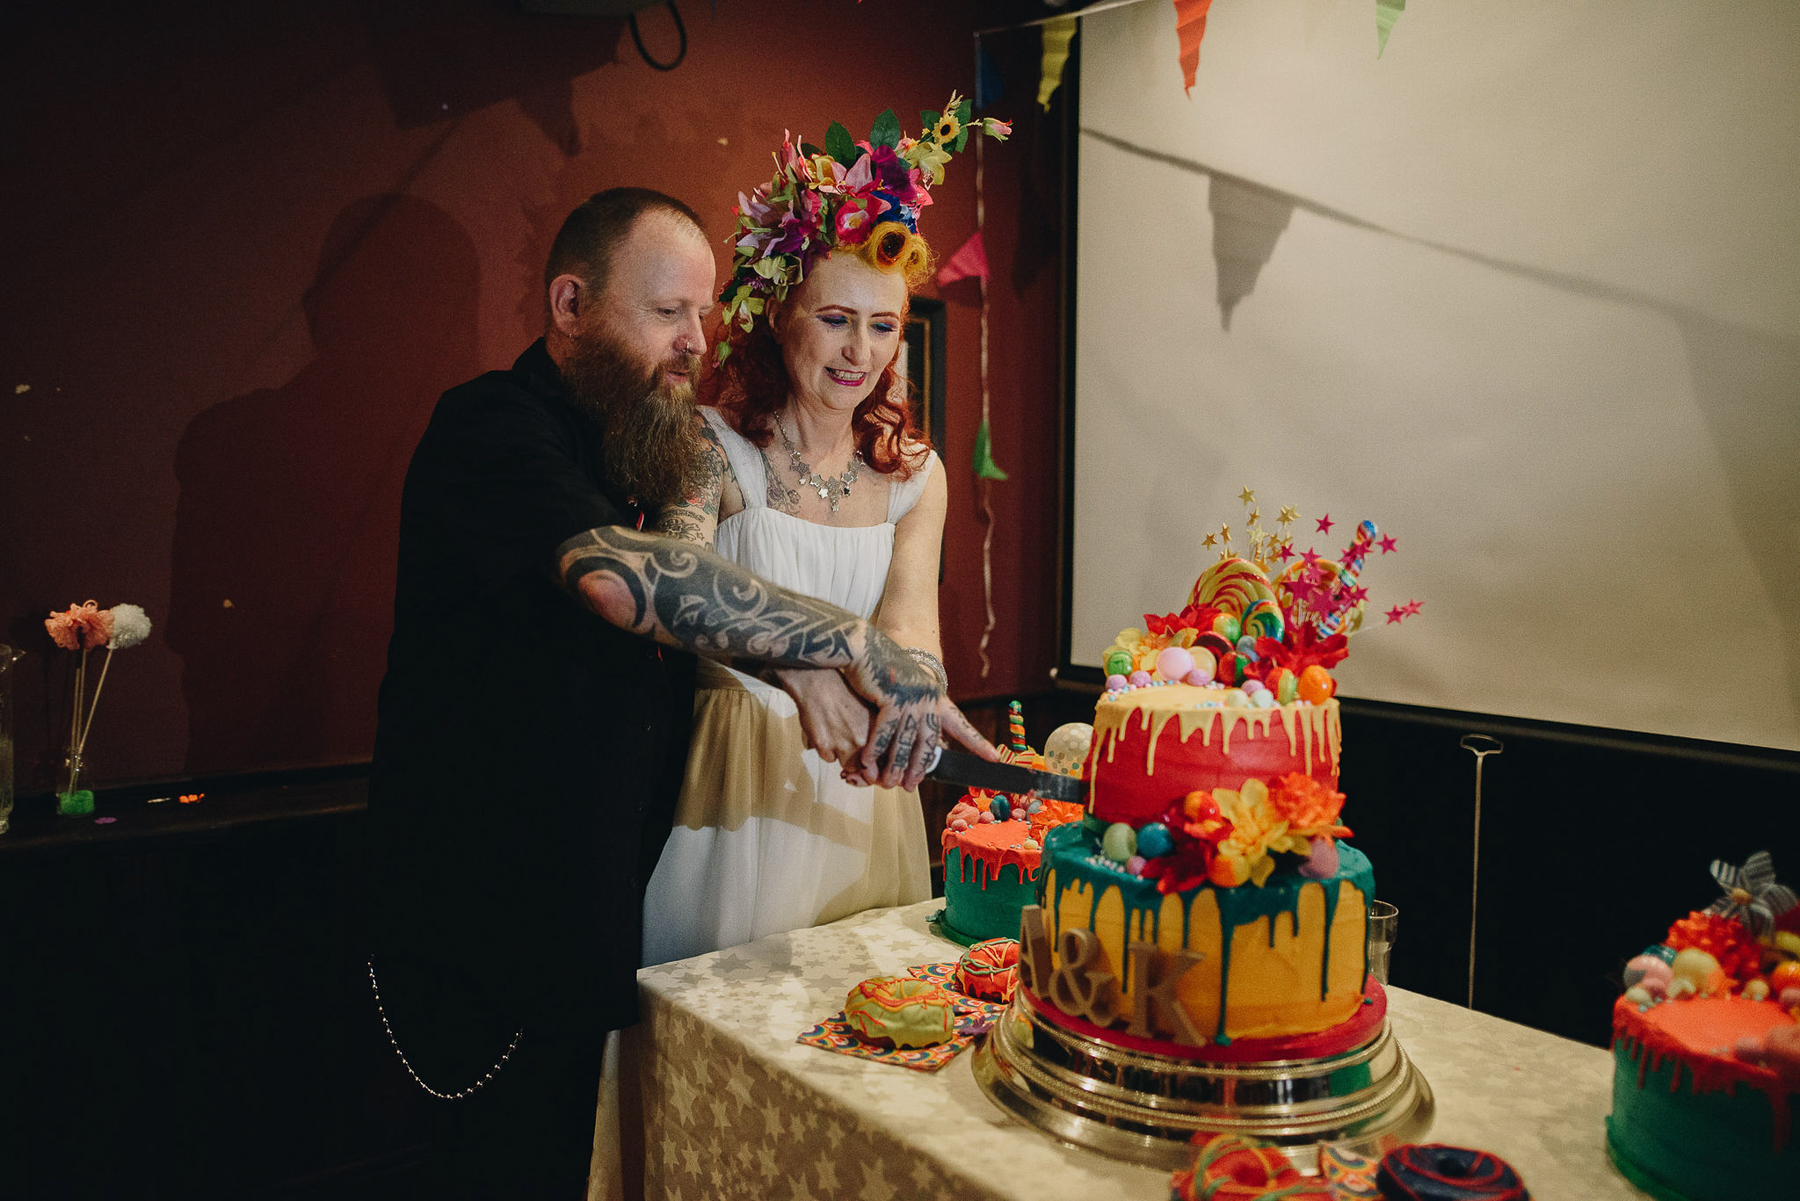 Alternative_Manchester_Northern_Quarter_Wedding_Photography_The_Pin-Up_Bride-63.jpg